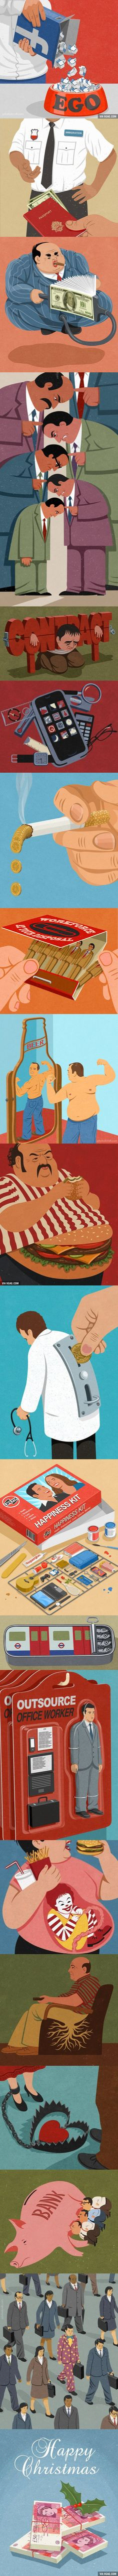 20 Satirical Illustrations That Capture The Humor In Our Modern-Day Flaws (By John Holcroft)